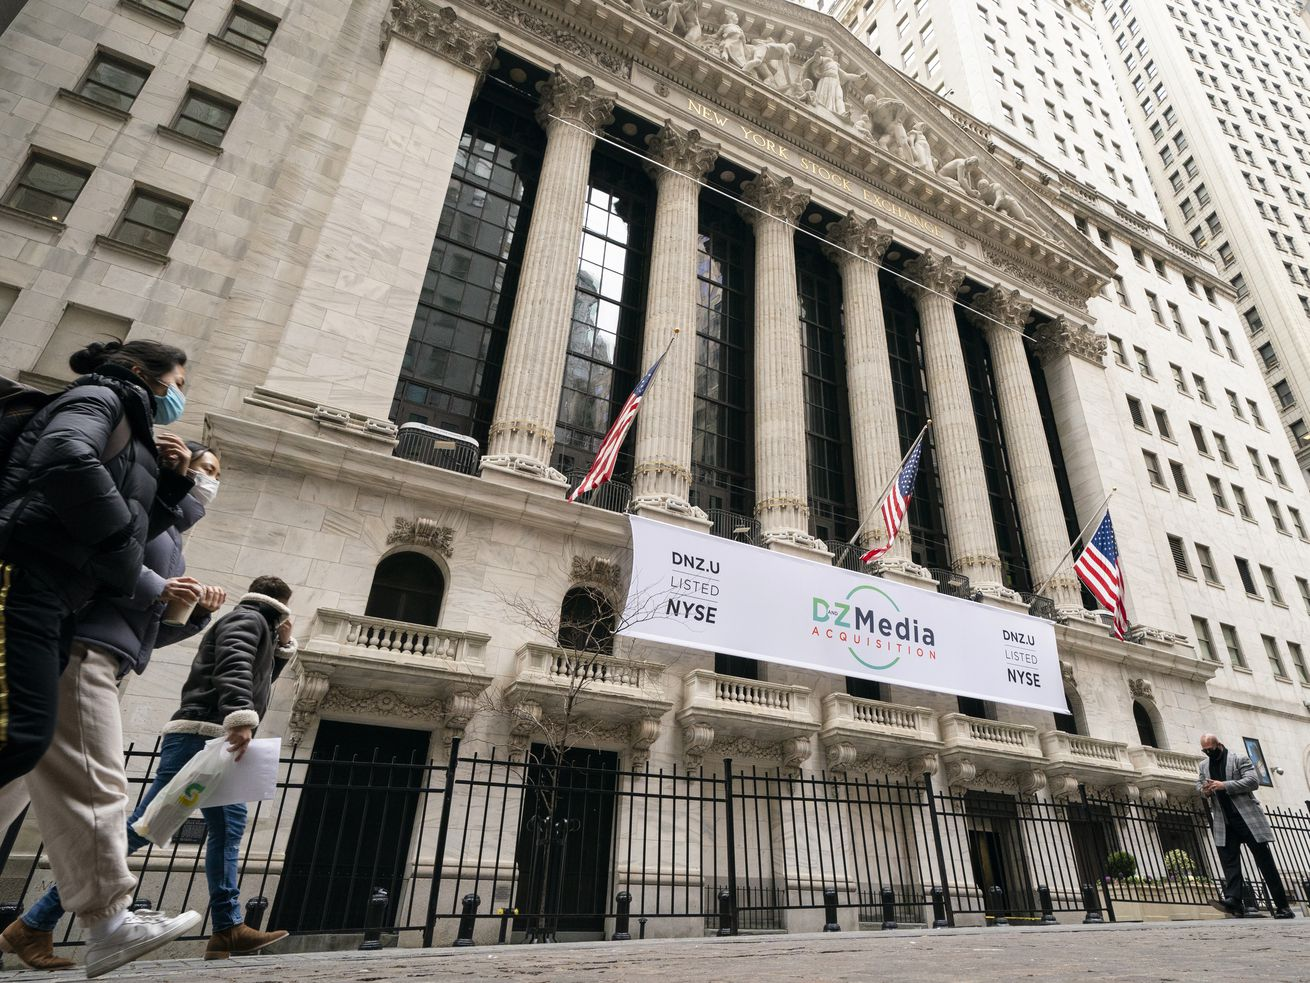 In this Jan. 27, 2021 file photo, pedestrians pass the New York Stock Exchange in New York. Stocks were solidly lower in early trading Tuesday, May 4, dragged down by banks and big technology companies like Apple and Google.